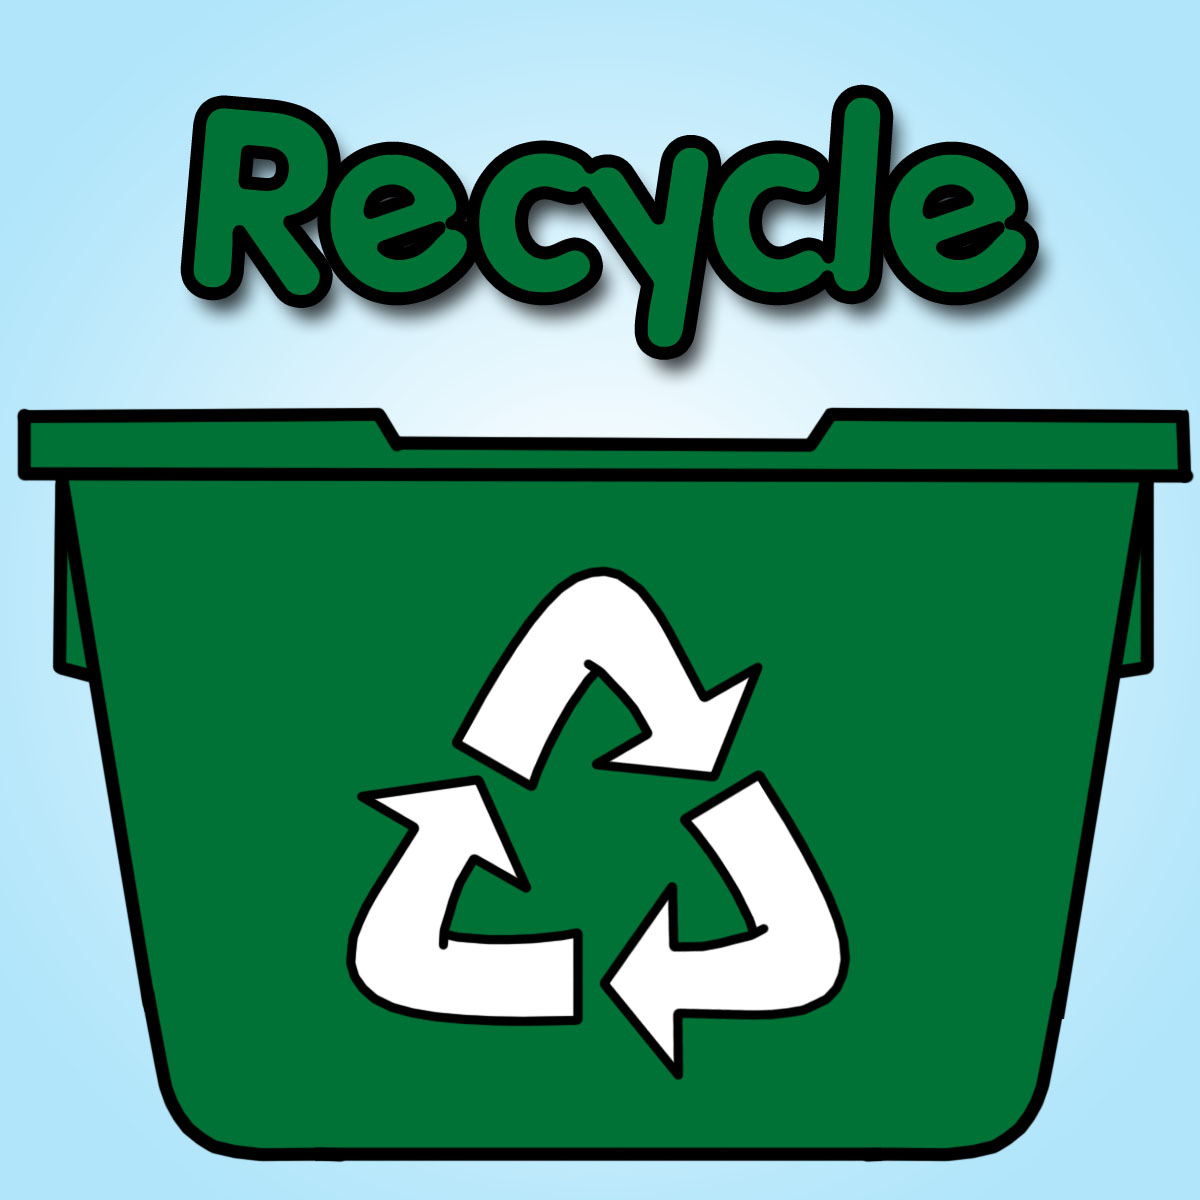 Recycle Clipart-Recycle Clipart-12